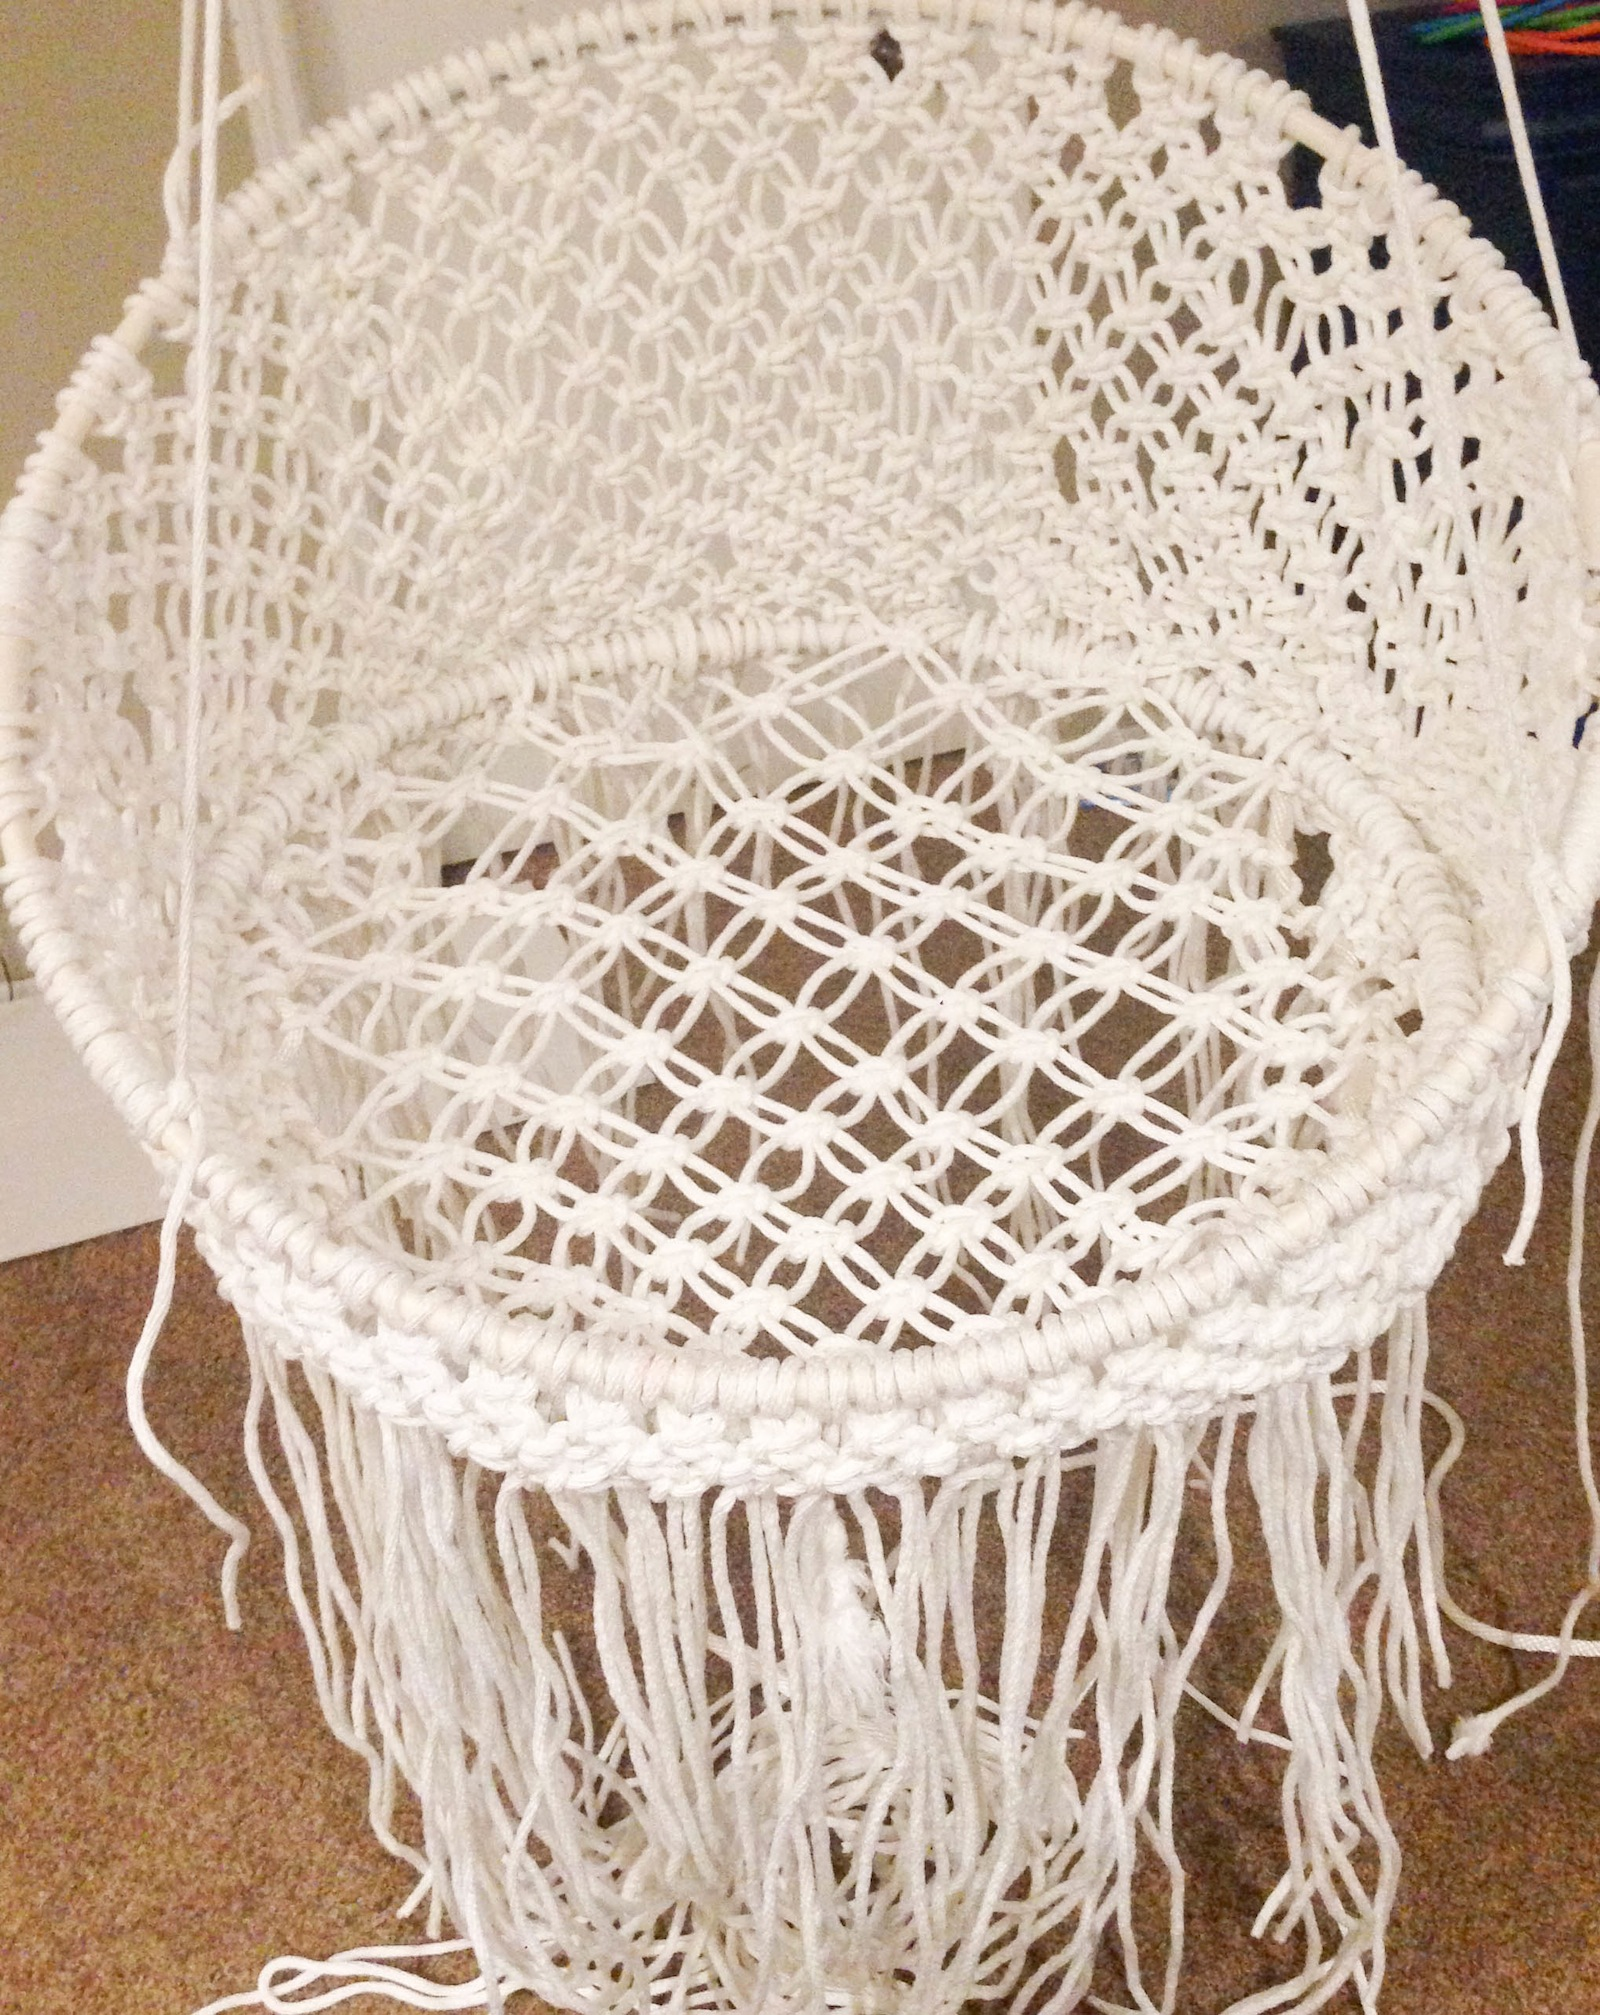 Diy hanging macram chair for Macrame hanging chair